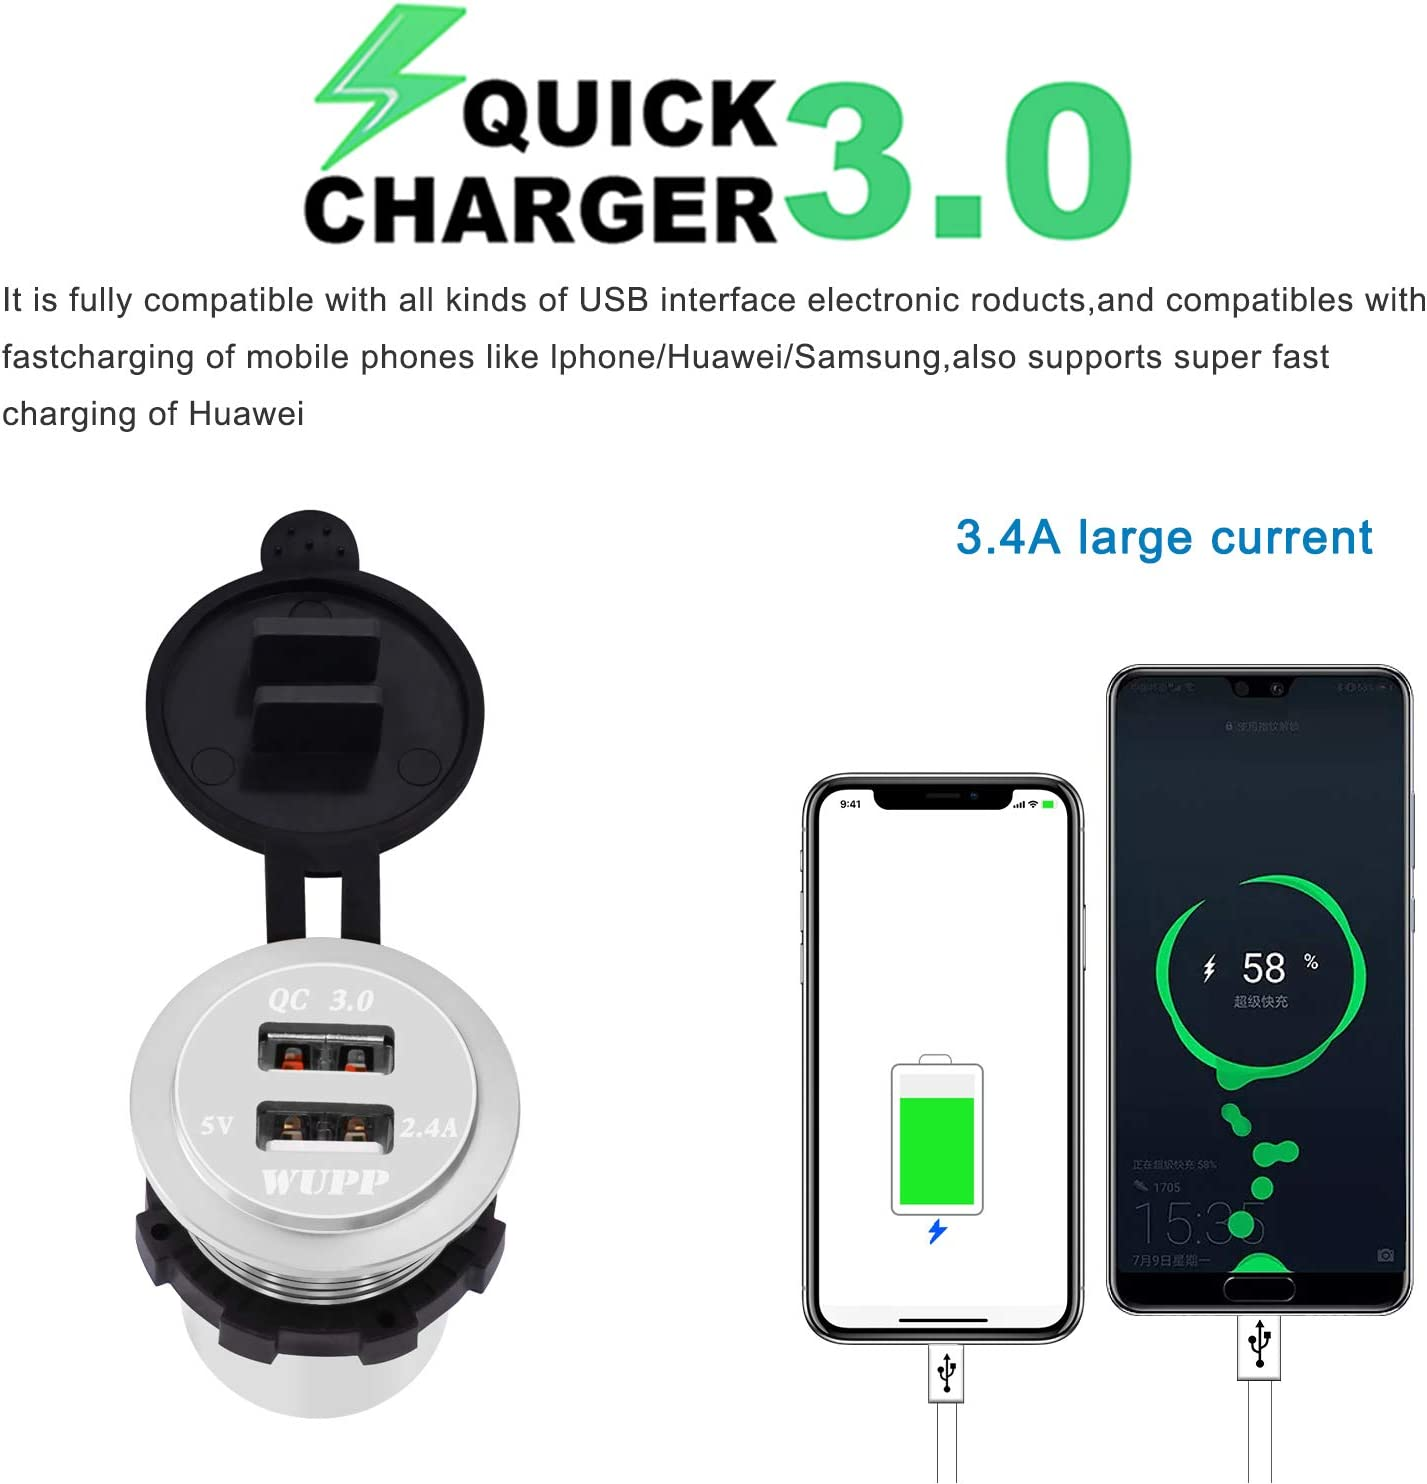 BlueFire Upgraded Aluminum Alloy Fast Charging 3.0 USB Charger Socket IP66 Waterproof Dual USB Power Outlet with QC 3.0 USB Port /& 5V 2.4A Port Led Light for Car Boat Marine Rv Motorcycle Silver